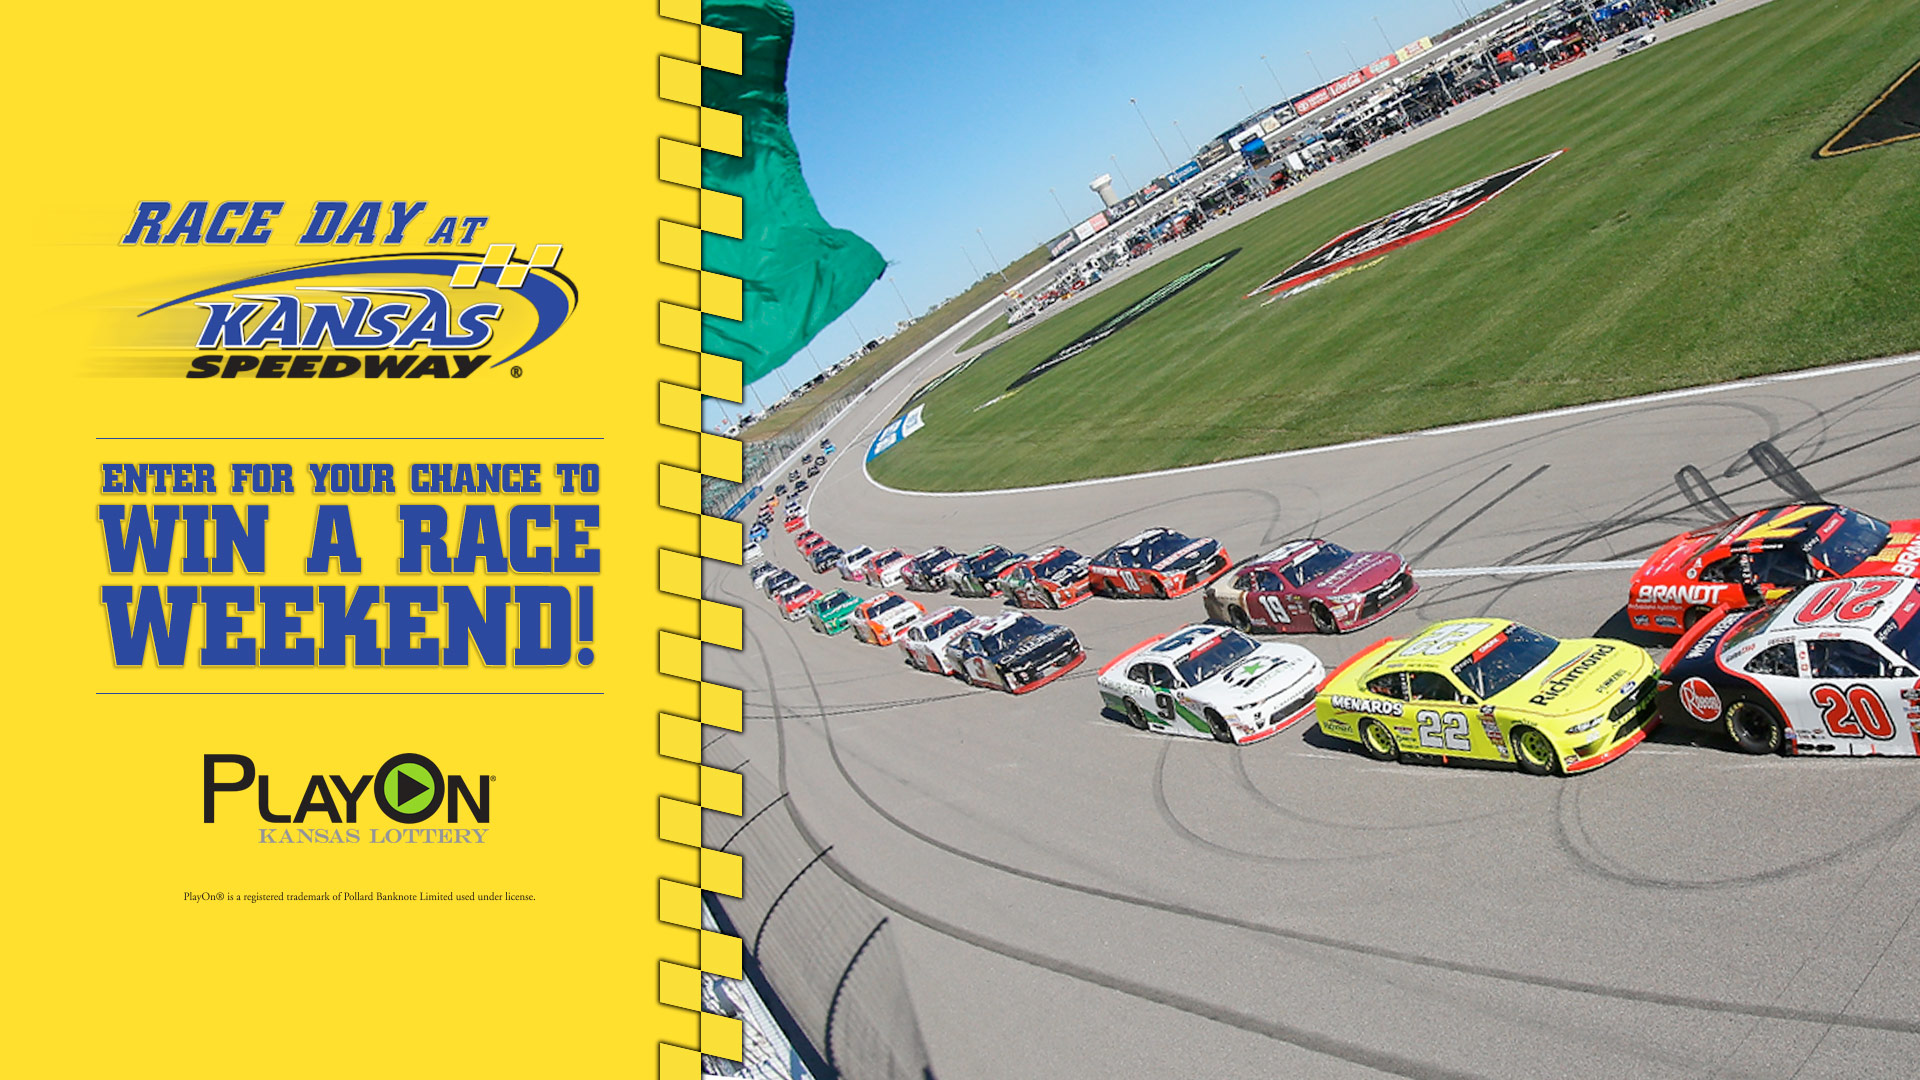 Race Day At Kansas Speedway Promotion